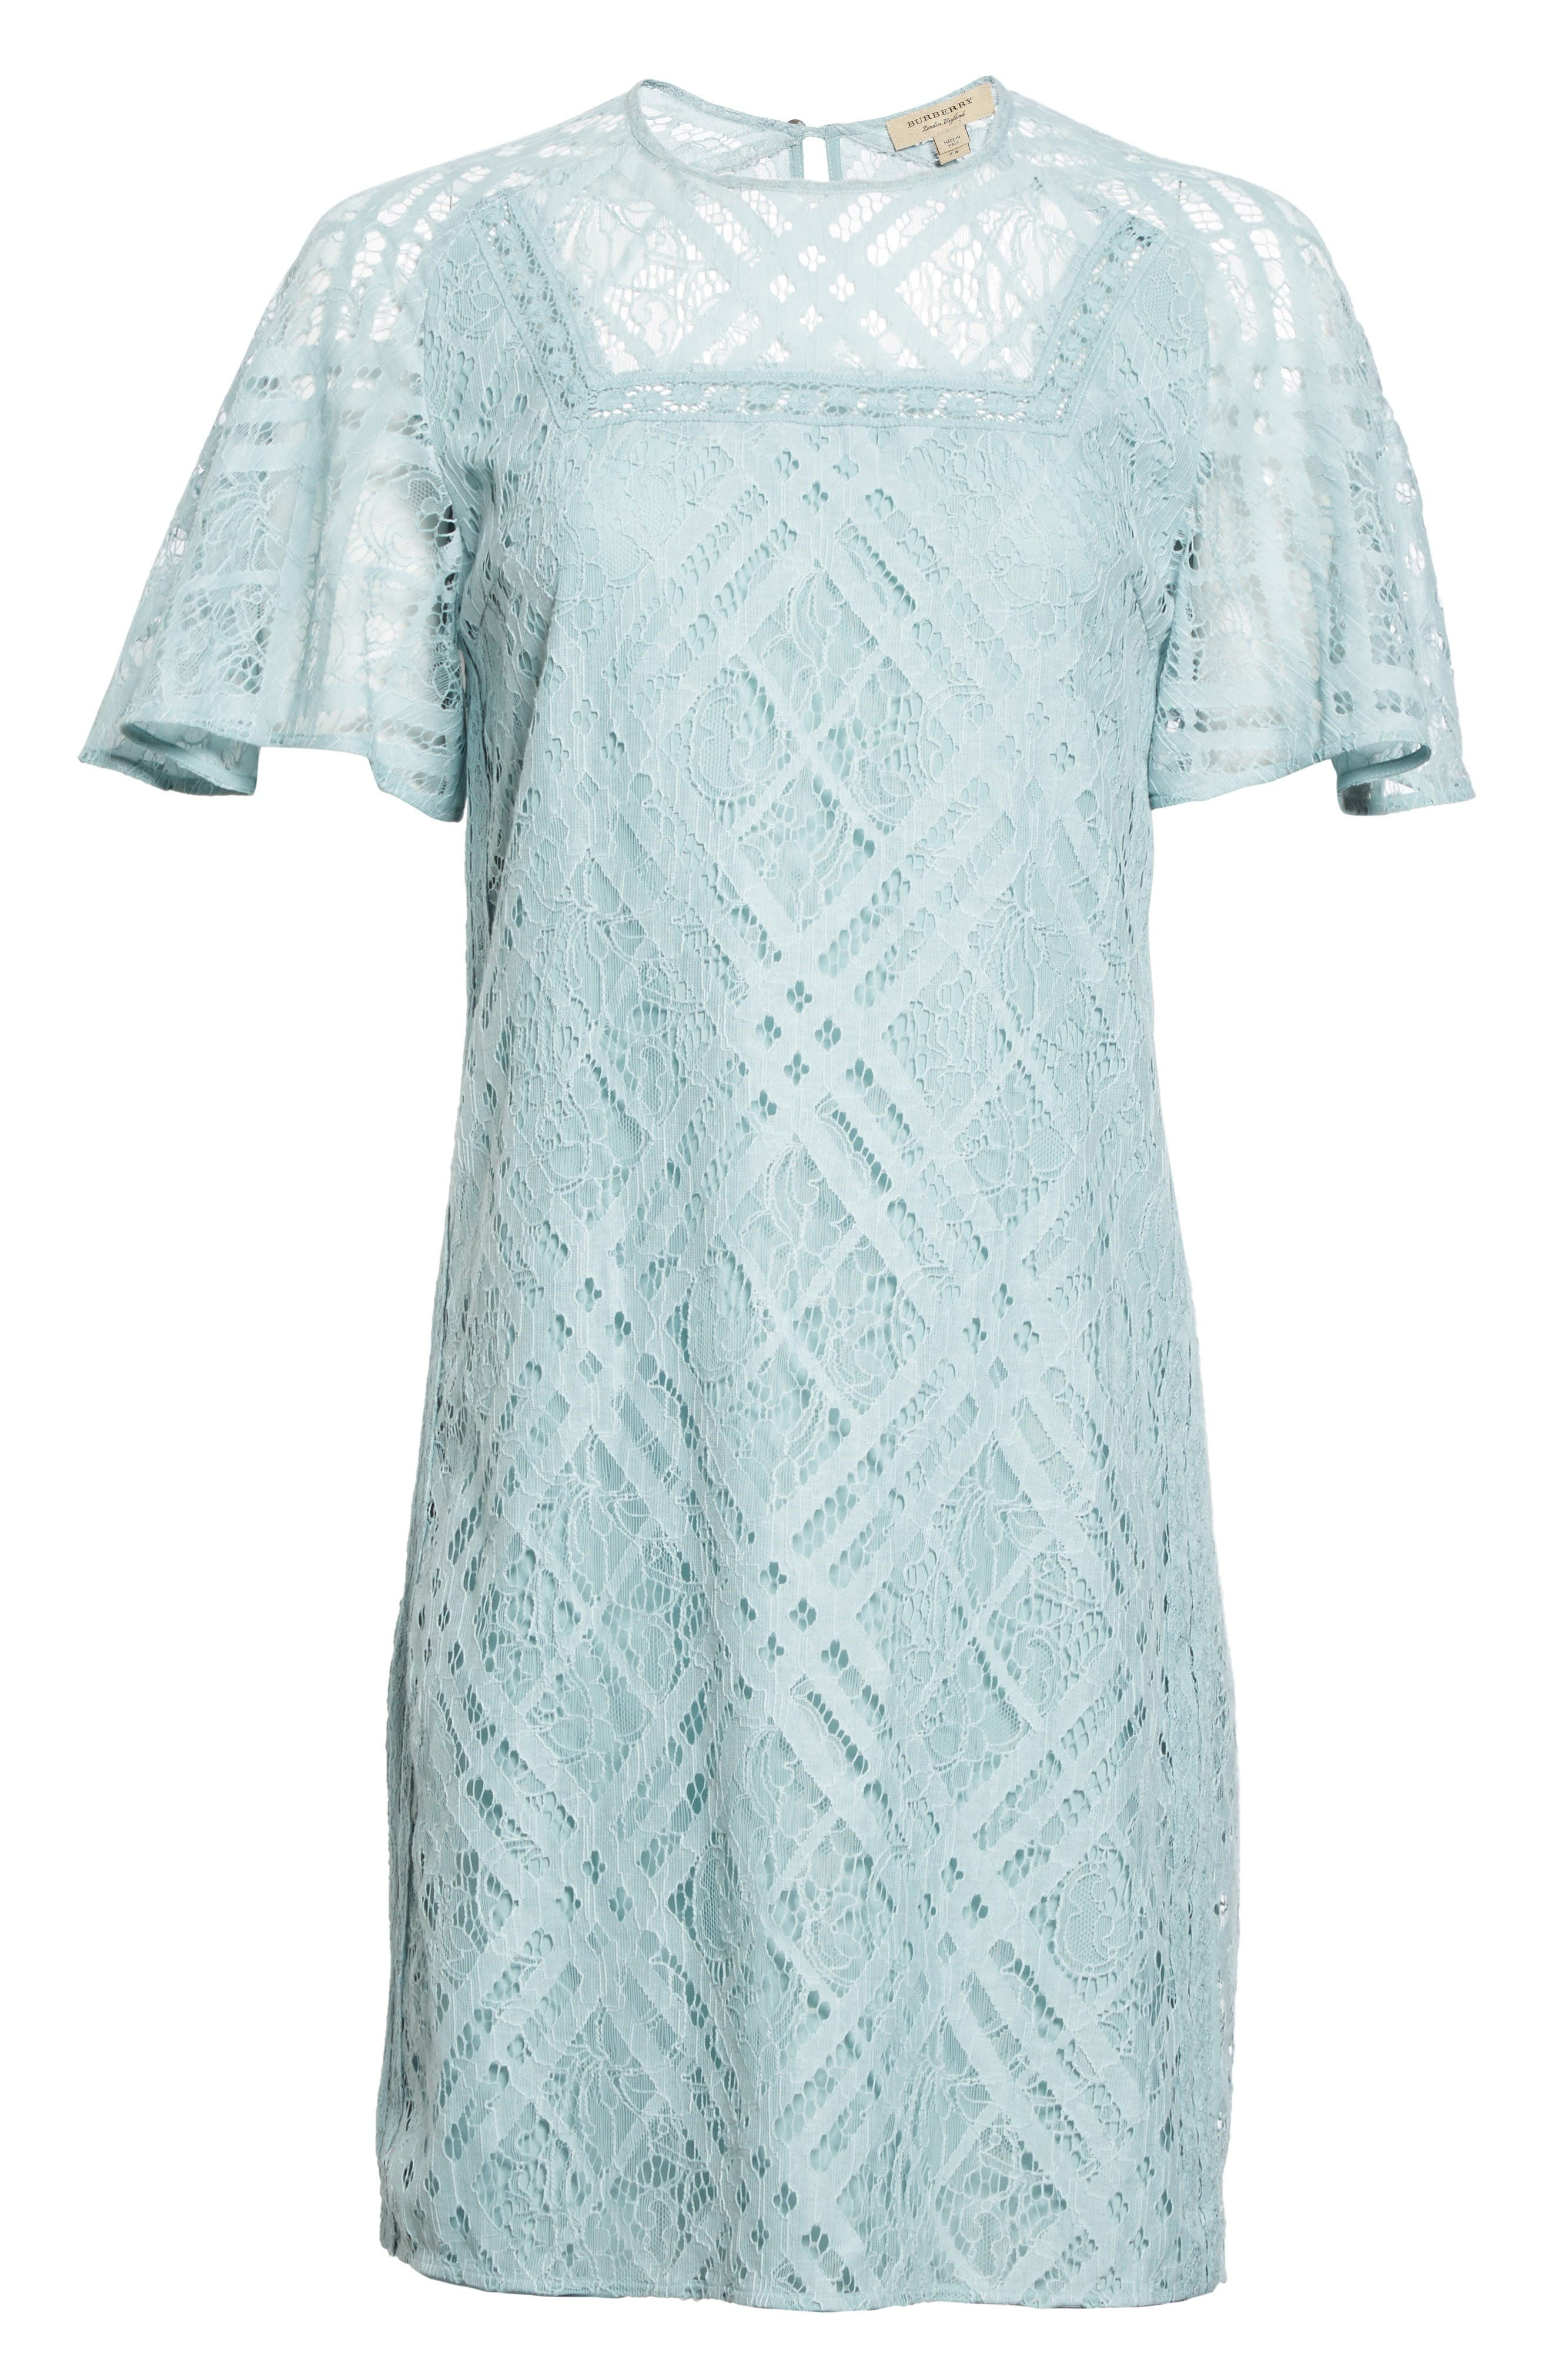 Keri Floral Check Lace Dress,                             Alternate thumbnail 4, color,                             Pale Slate Blue